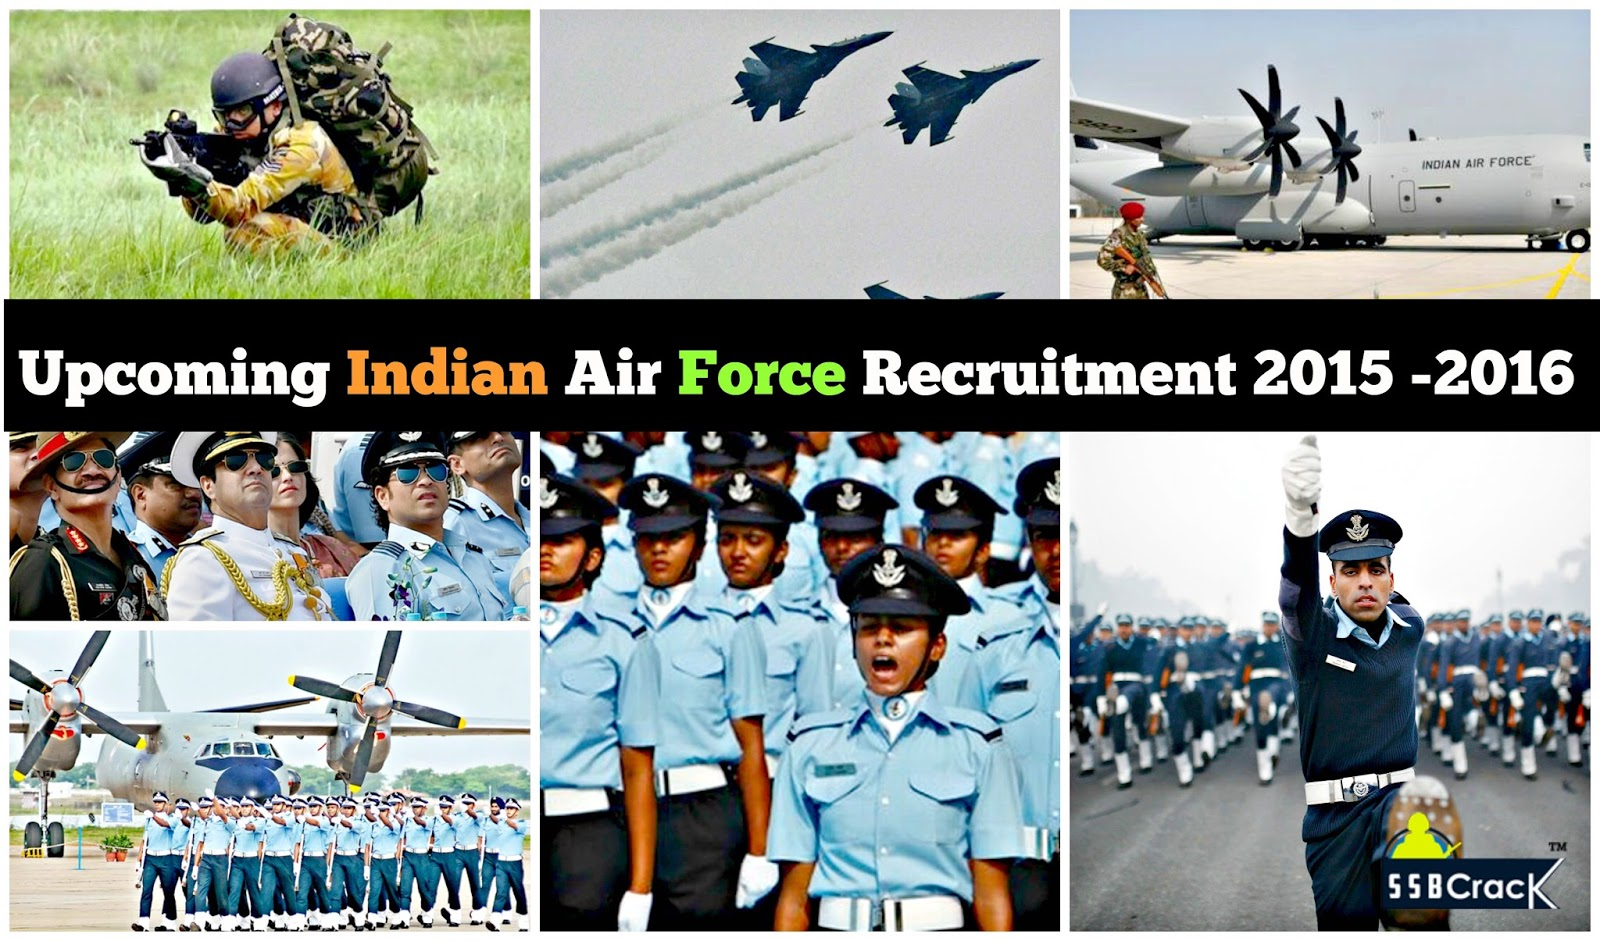 Upcoming Indian Air Force Recruitment 2016